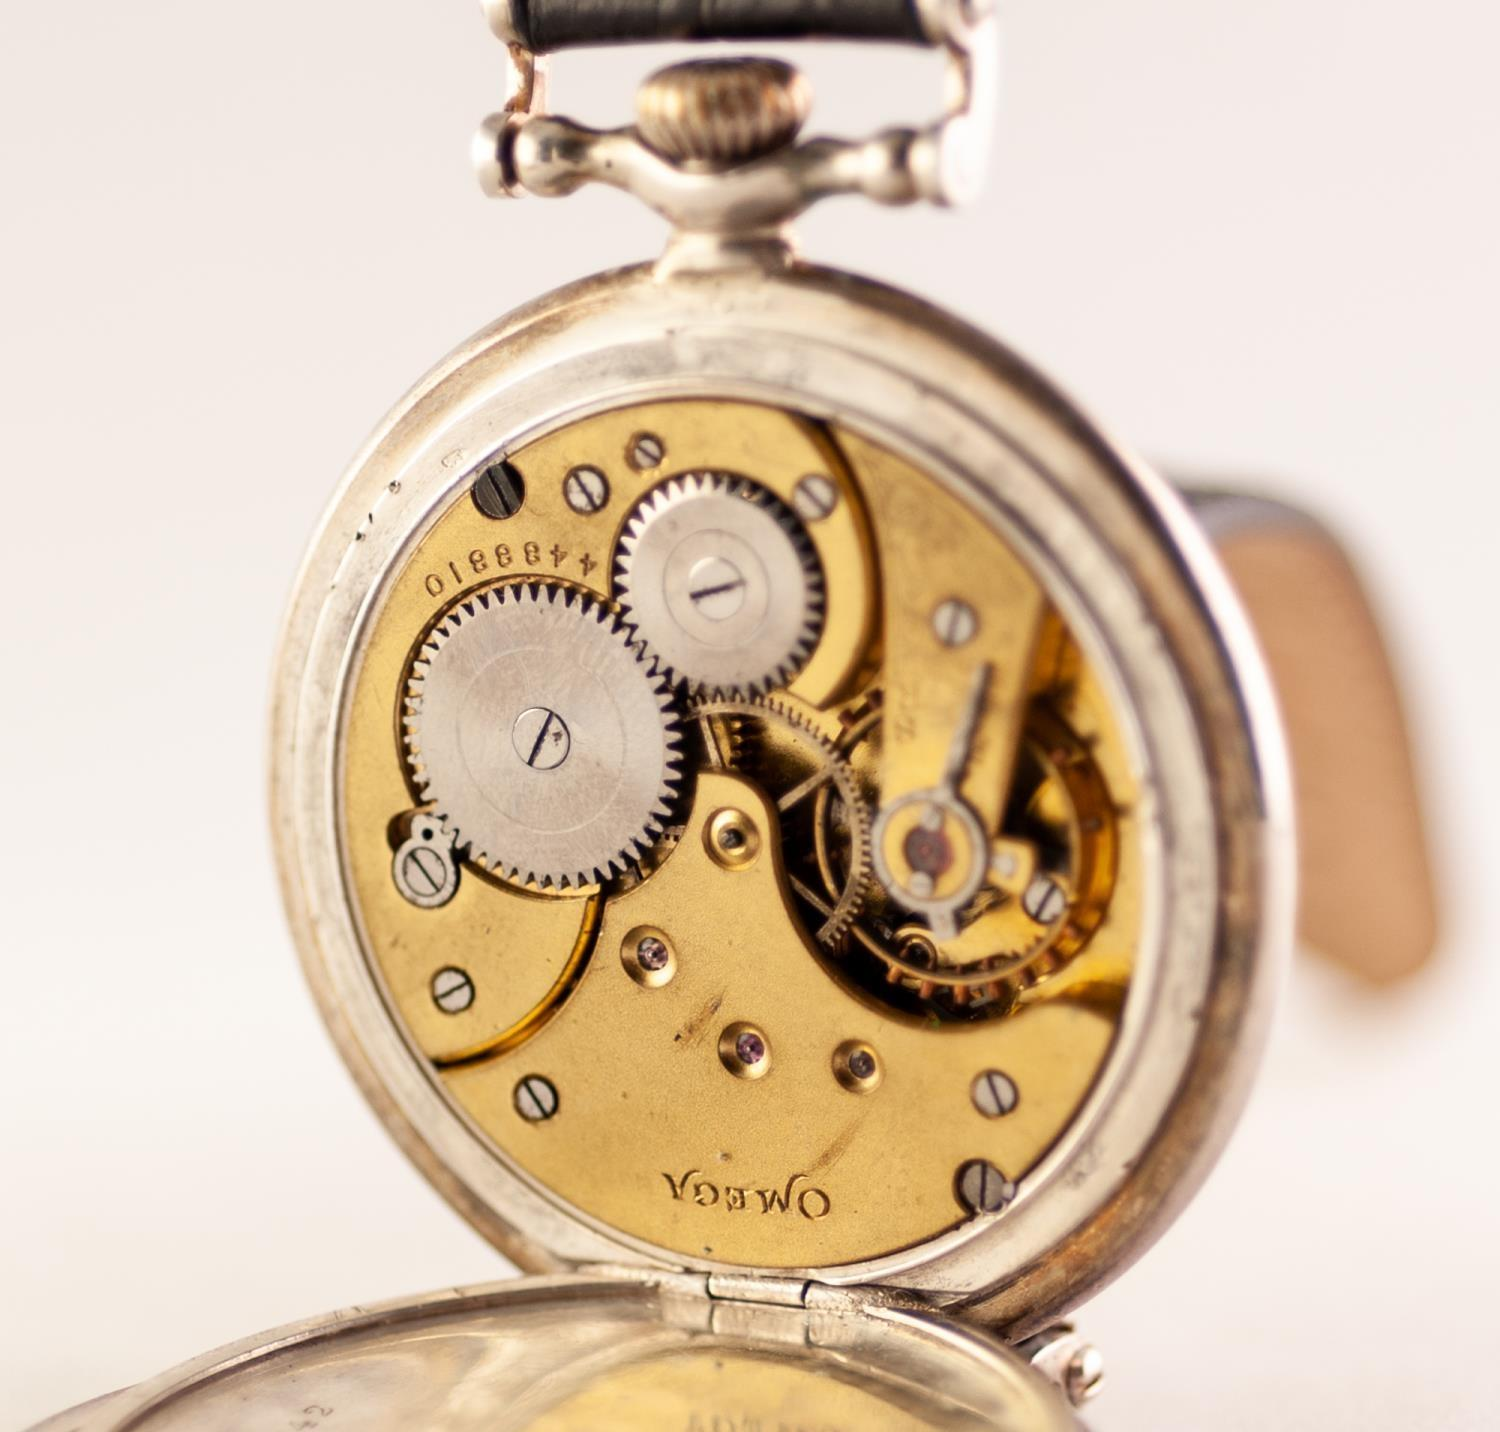 Lot 35 - OMEGA SILVER GRAND PRIX PARIS 1900 POCKET WATCH With wristwatch attachments, enamel signed white